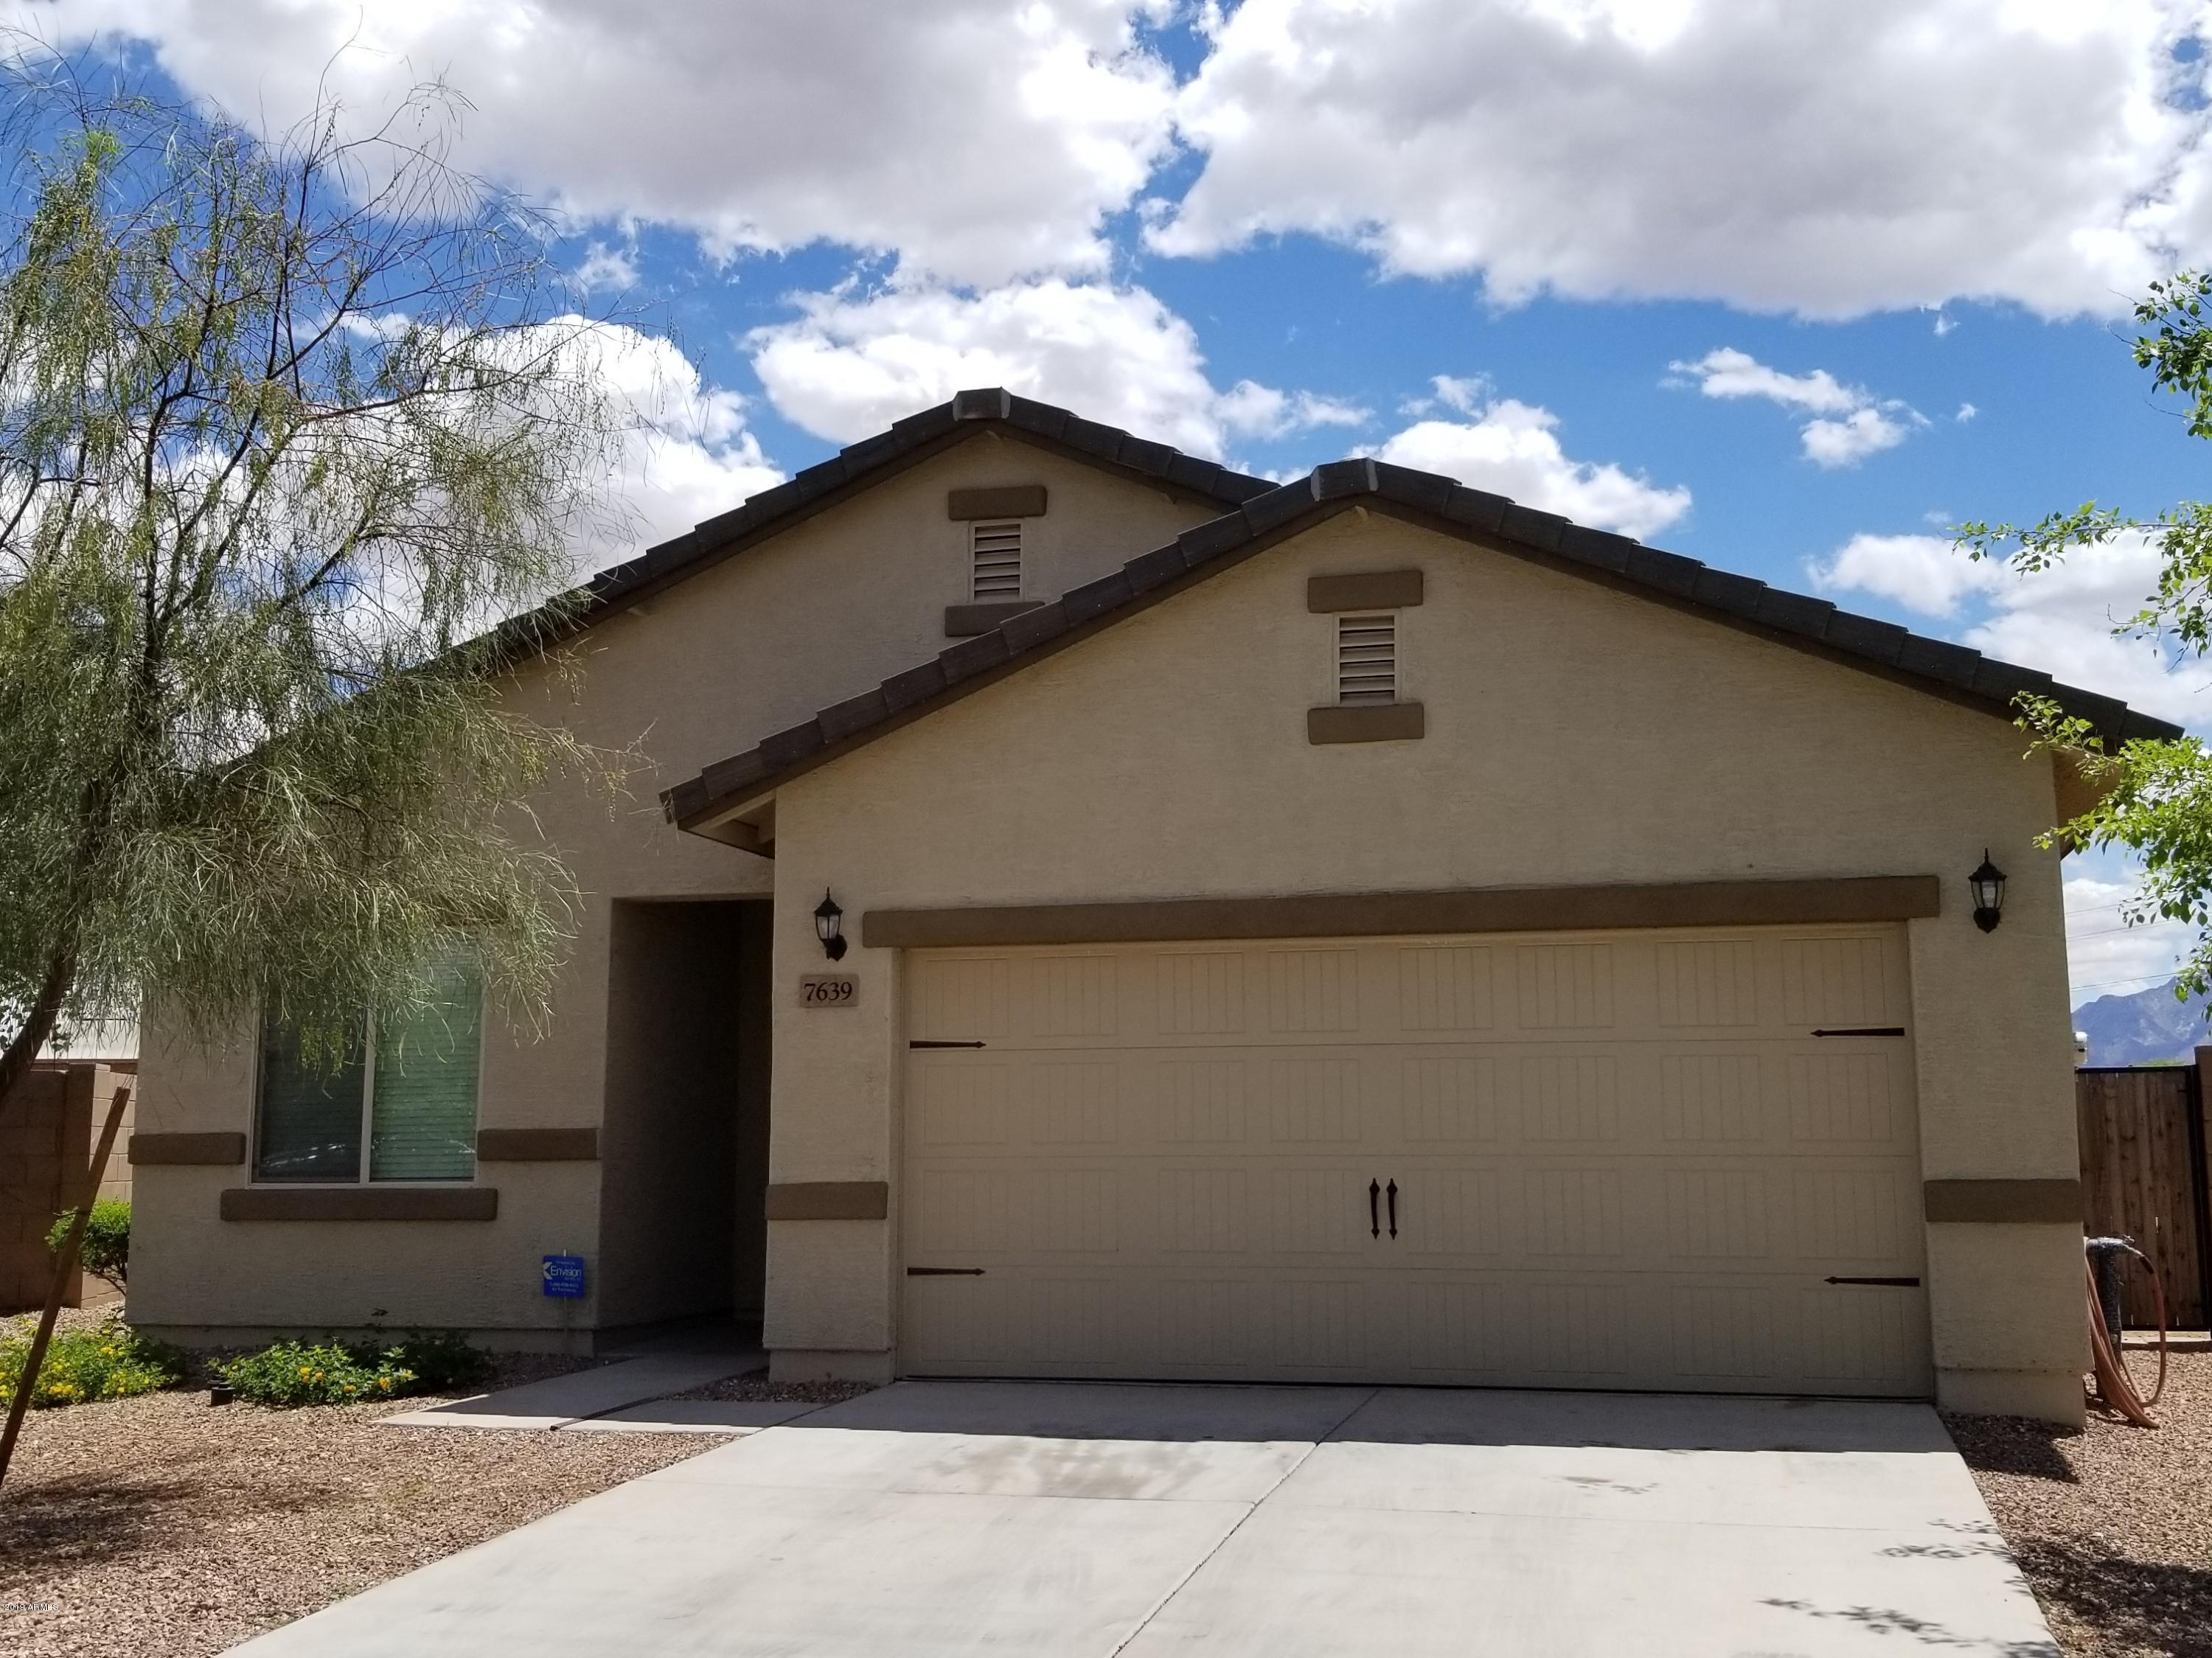 Photo of 7639 W CARTER Road, Laveen, AZ 85339